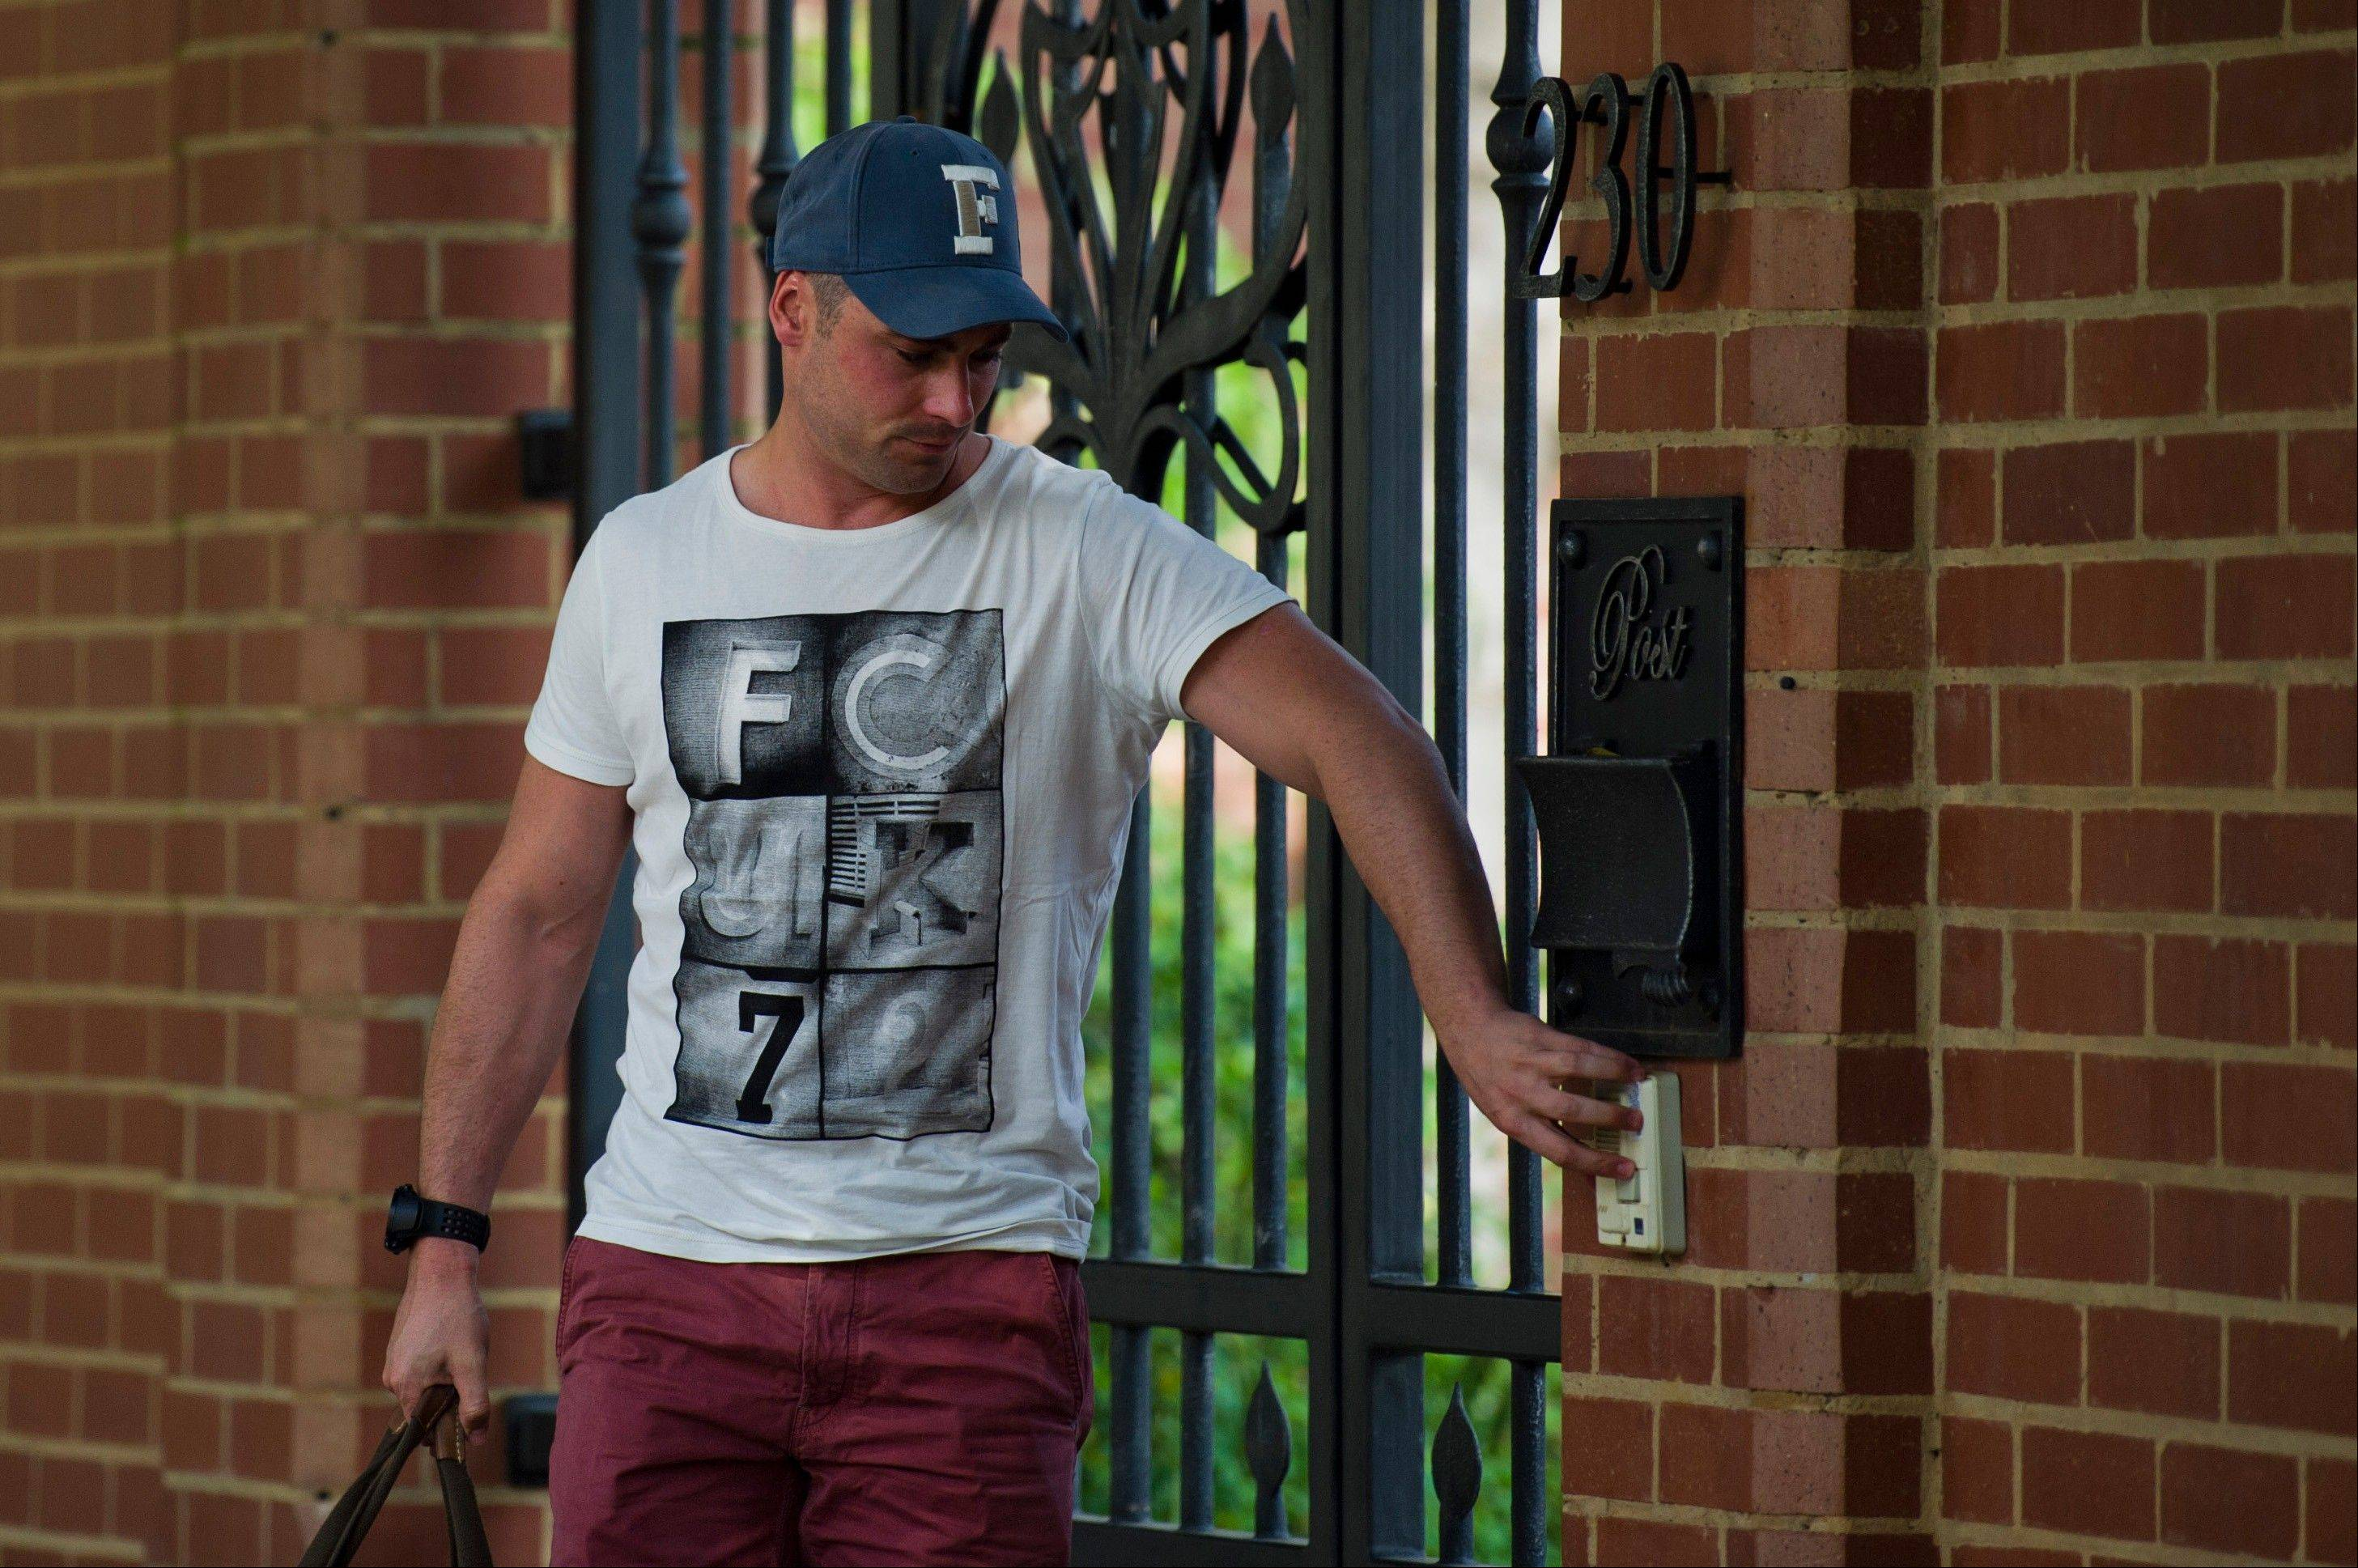 Carl Pistorius, brother of Olympian athlete, Oscar Pistorius, arrives home Sunday, where his brother has been staying in Pretoria, South Africa, since being granted bail Friday for the Valentine's Day shooting death of his girlfriend.